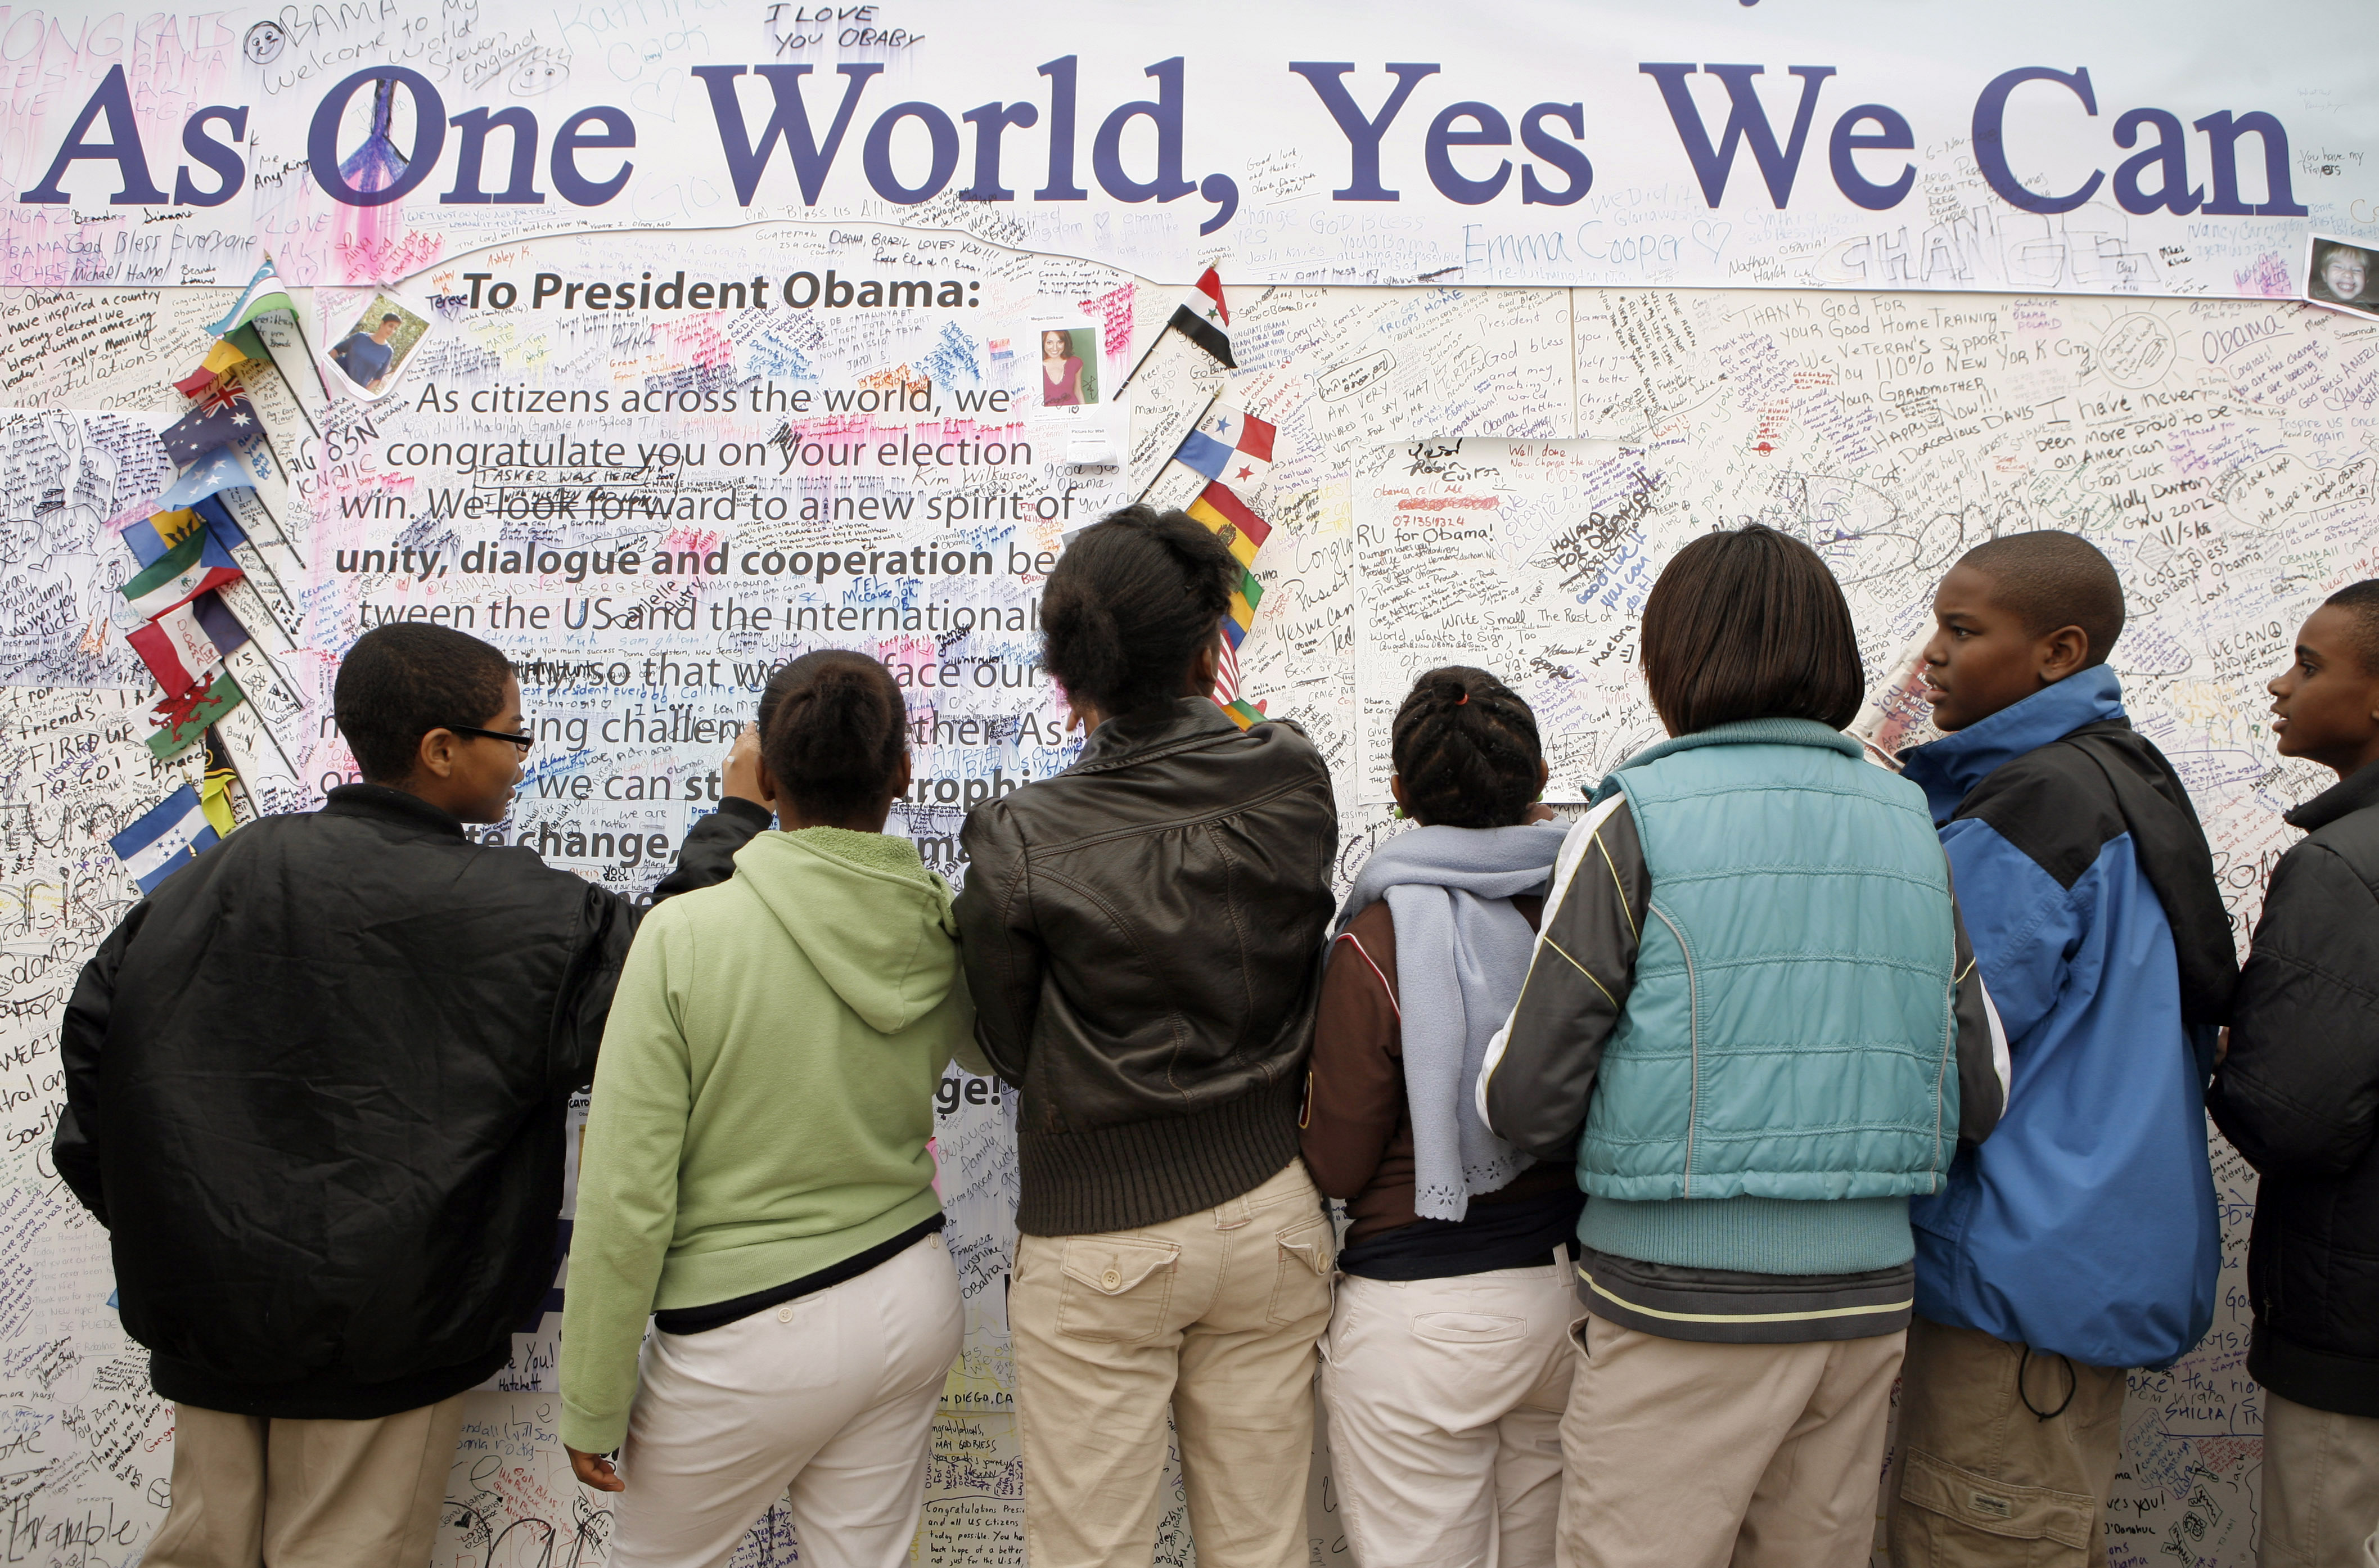 Students sign a message board dedicated to Barack Obama in Washington, D.C.